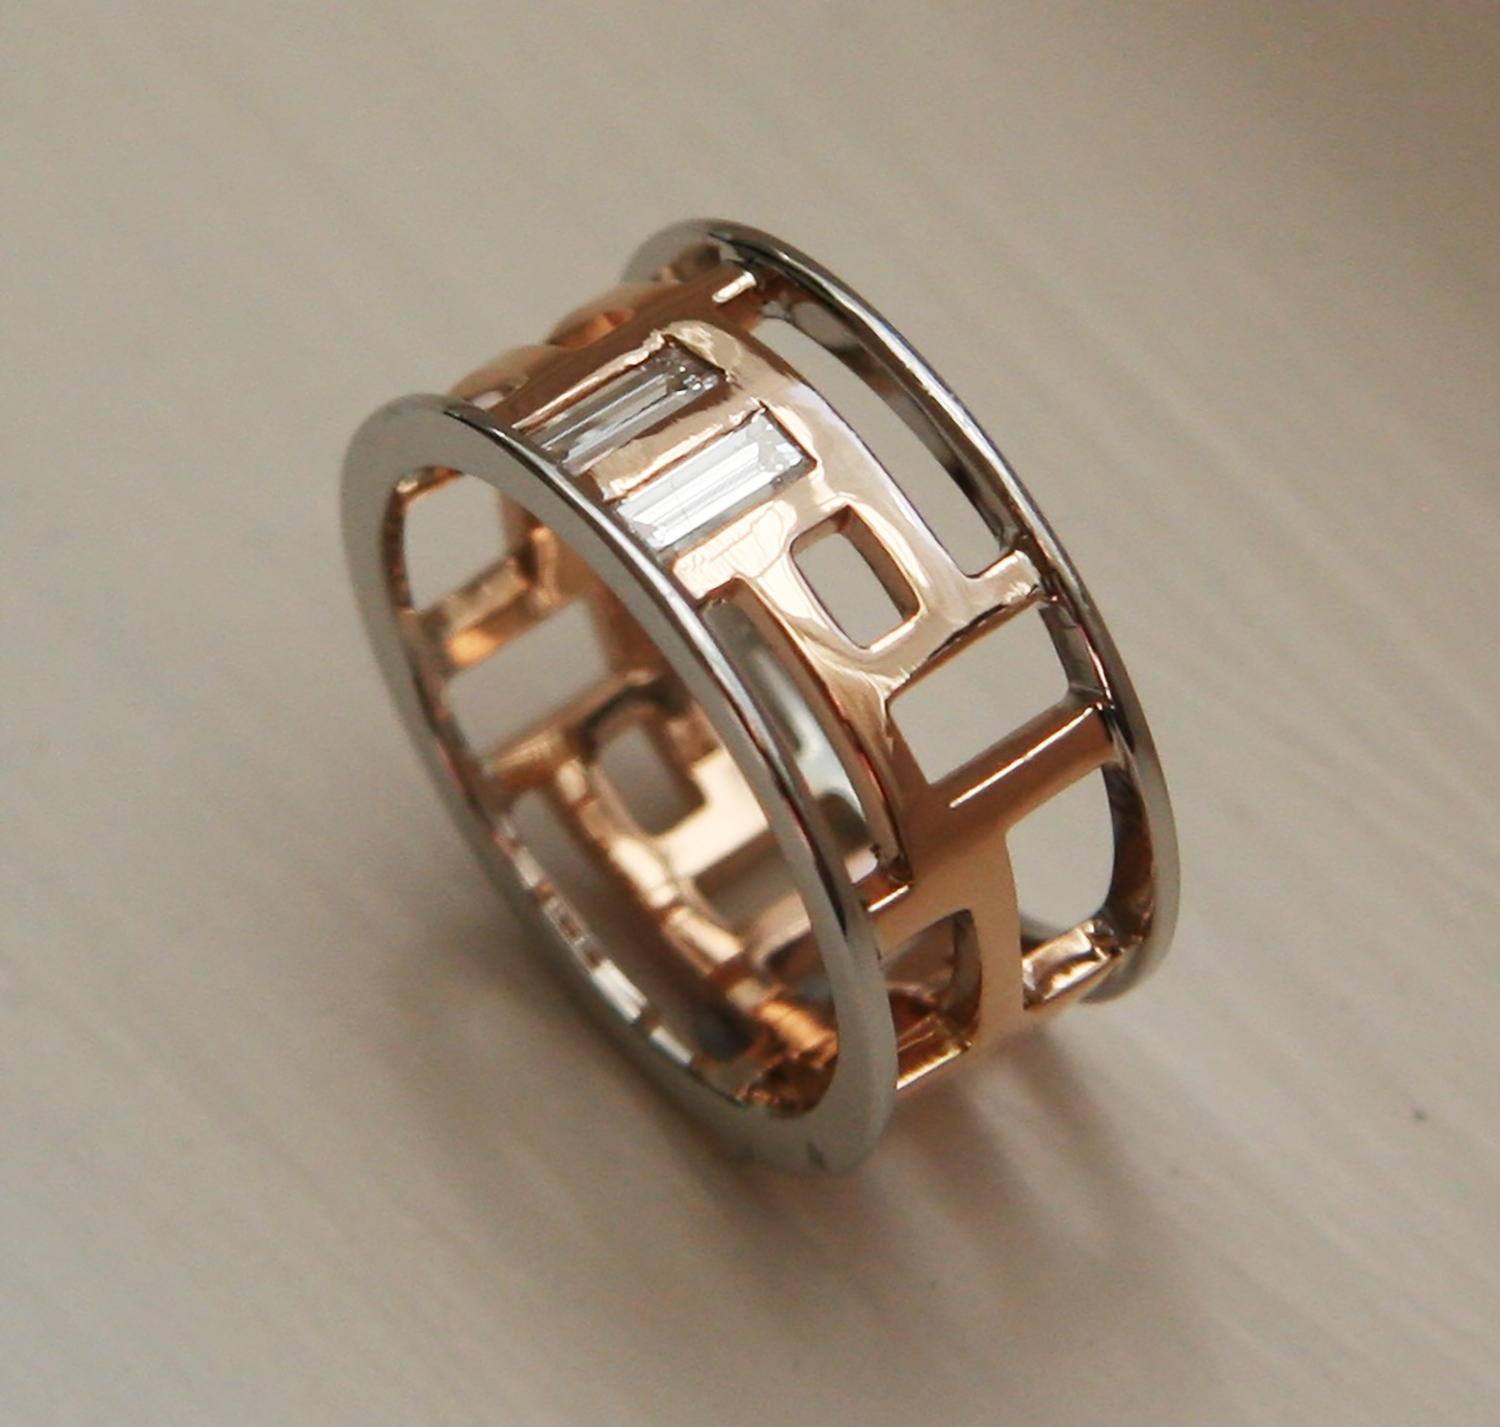 Dress Rings - Platinum, Gold, Silver.The choice is yours.